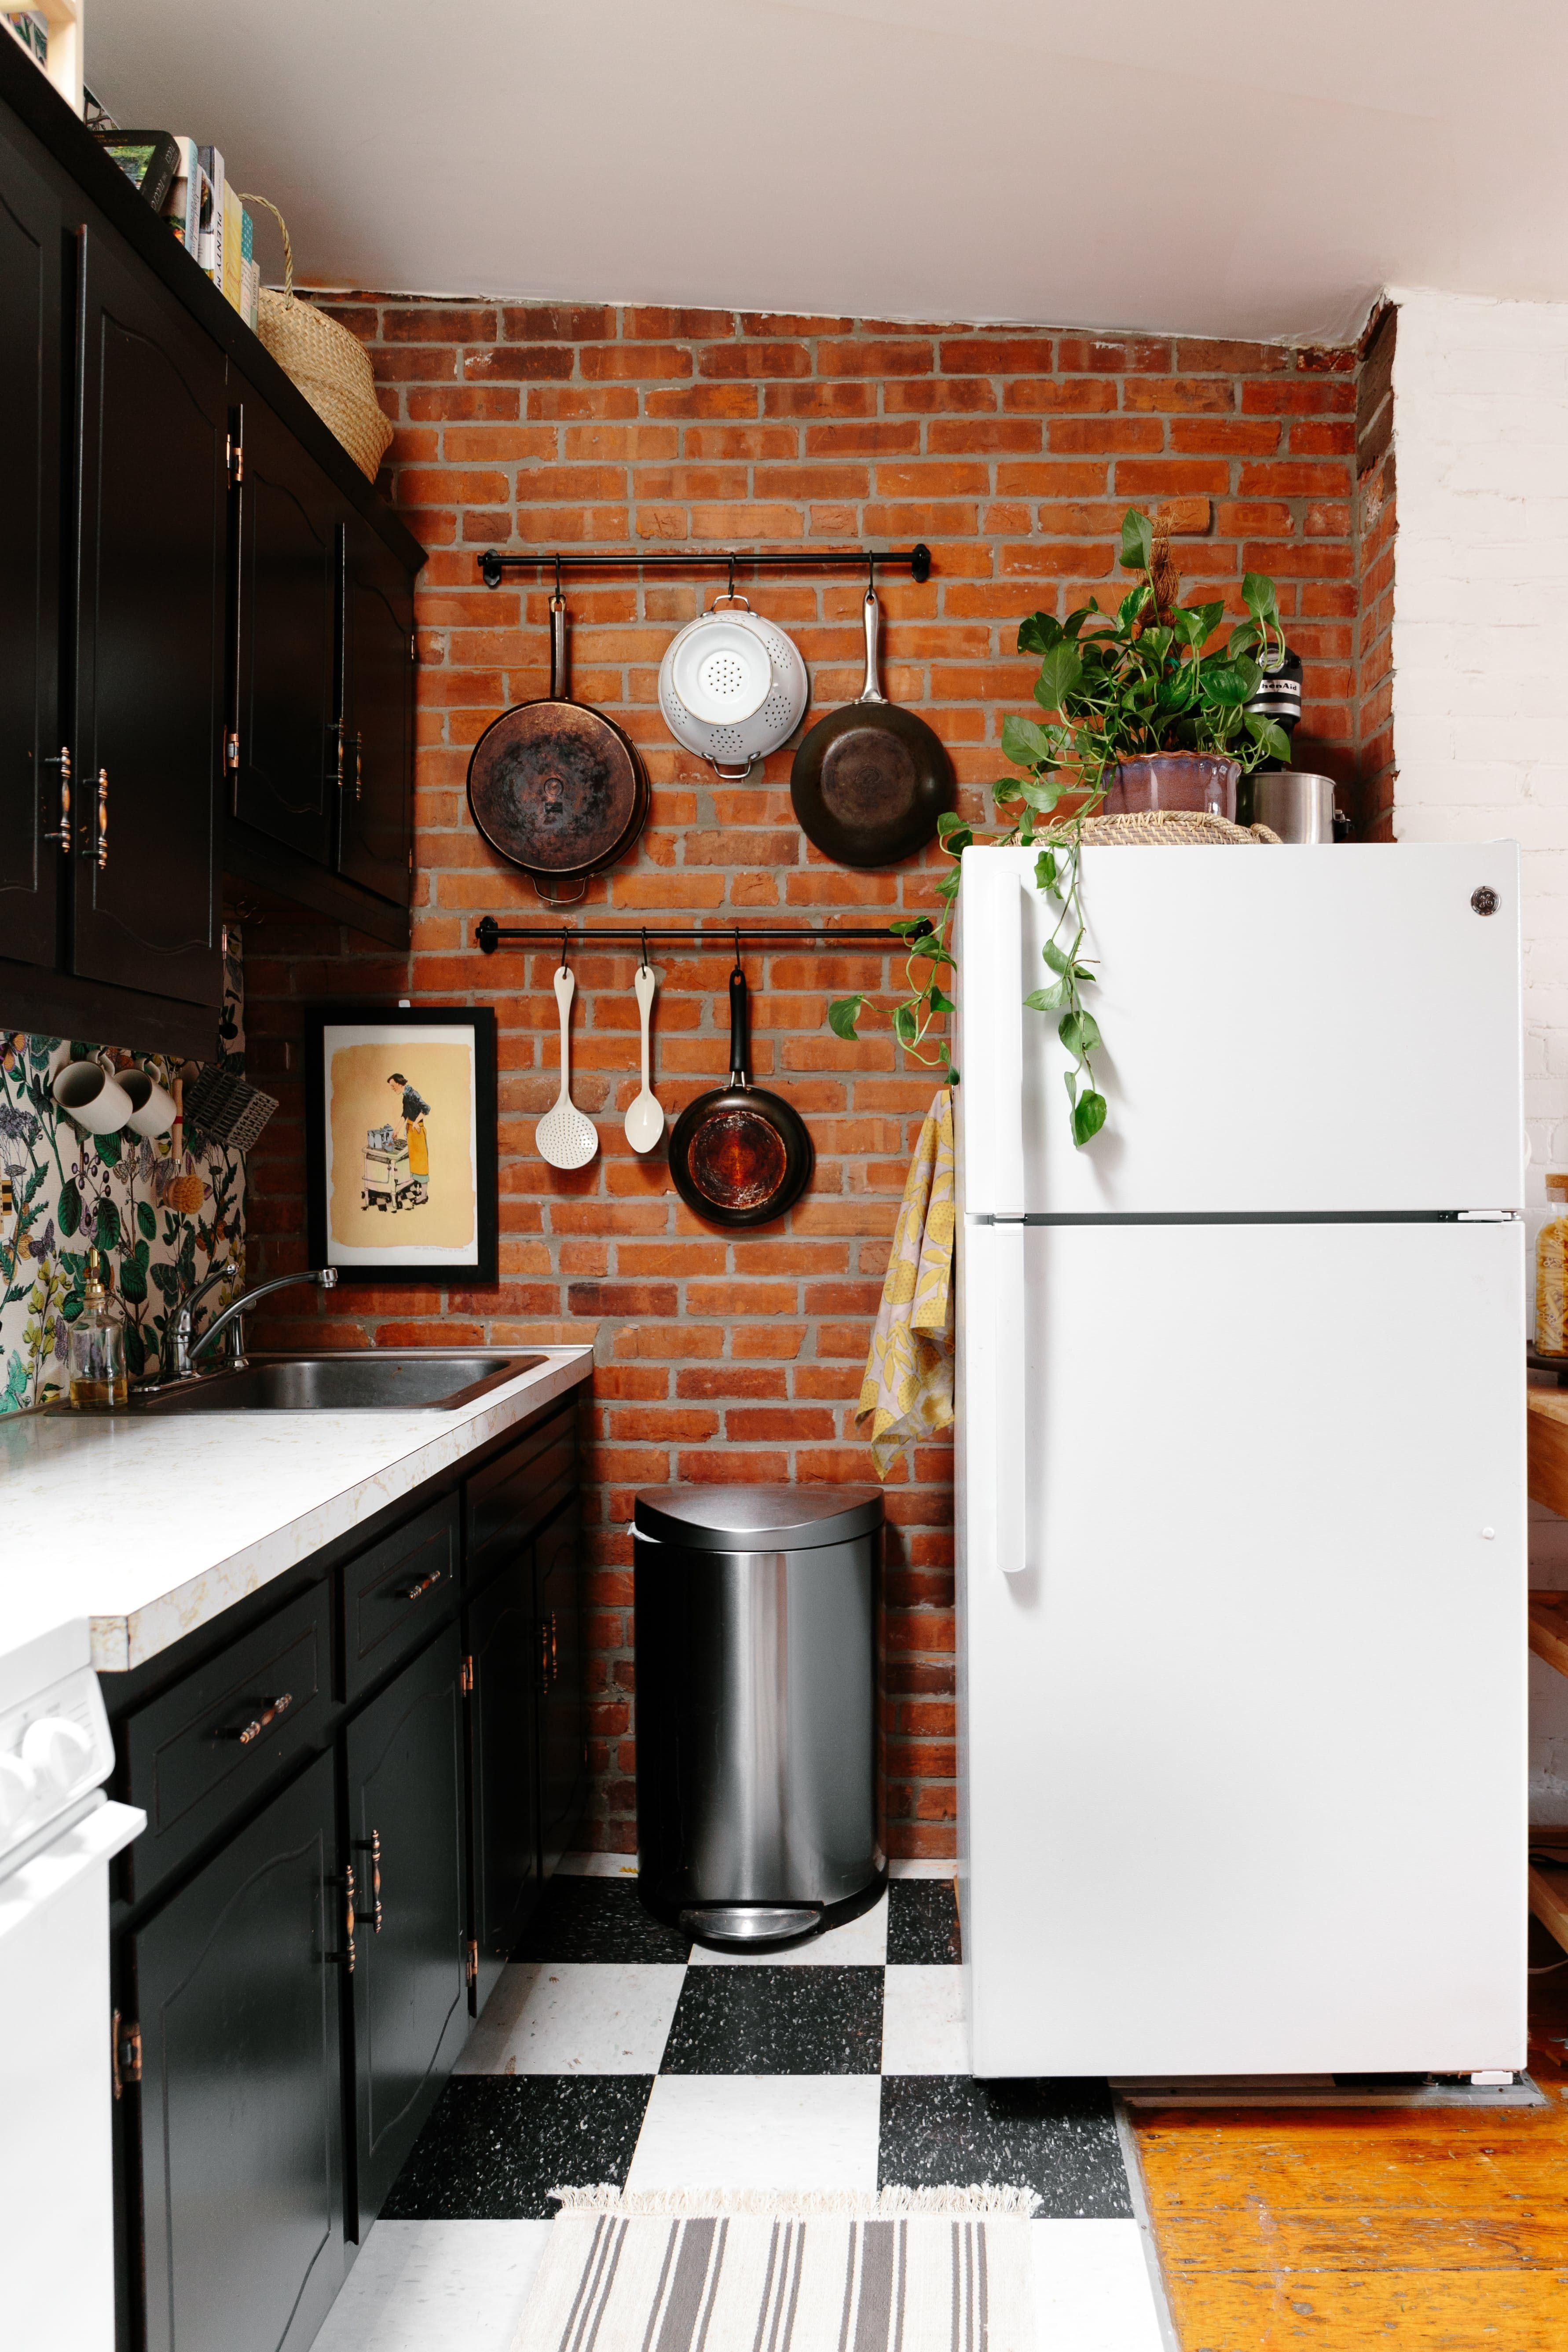 Rental Apartment Kitchen Ideas 17 Studio Apartments That Are Chock Full Of Organizing Ideas